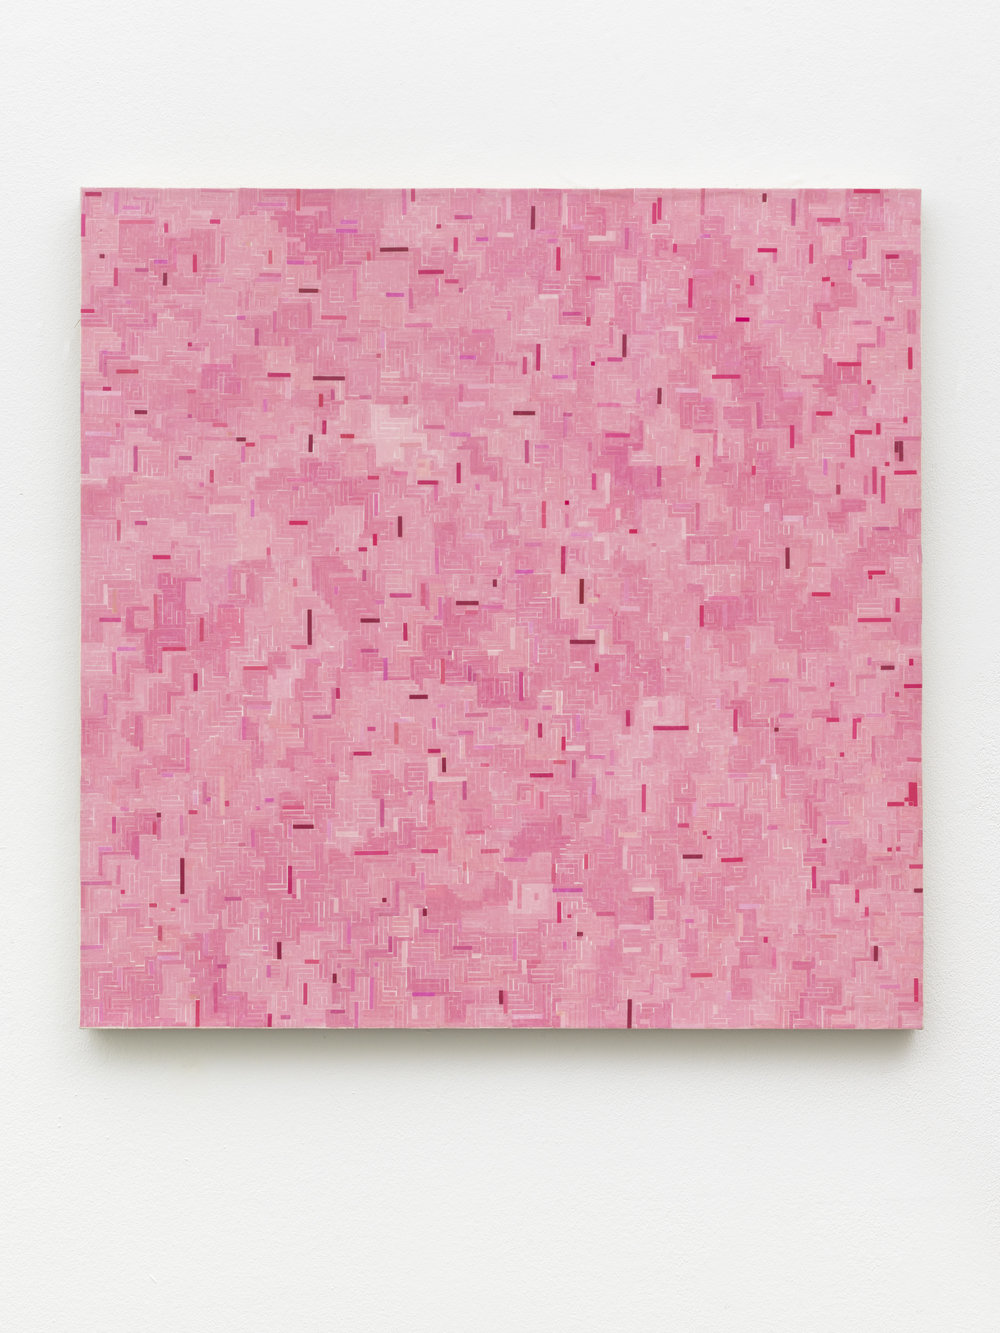 """GH/M 1114, Gregor Hildebrandt  """"pink mich zu Ende"""", 2018 74 x 74 cm / 29 1/4 x 29 1/4 in start and end of audio cassettes and acrylic on canvas"""